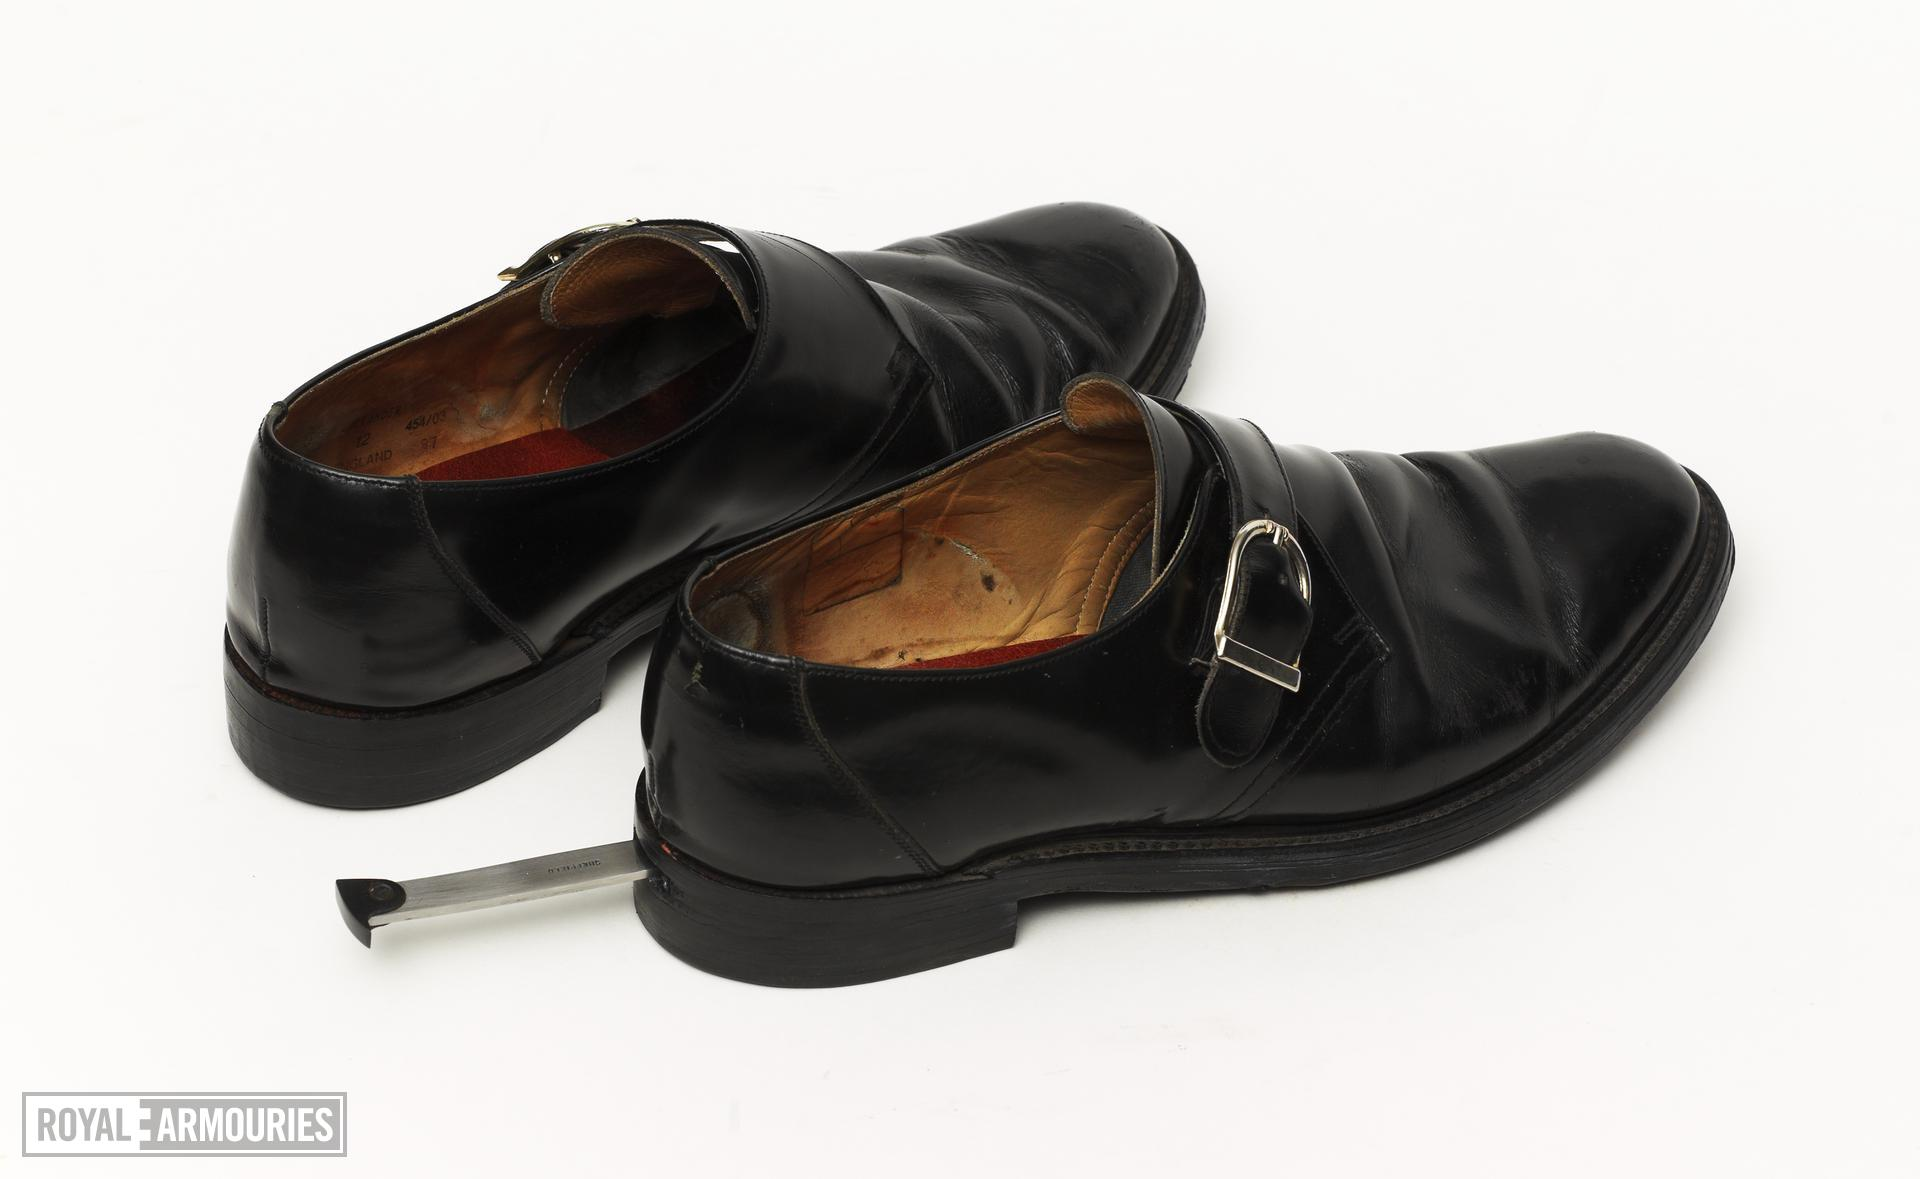 Shoe With concealed knife A standard shoe with a cavity made in the heel to house a short knife